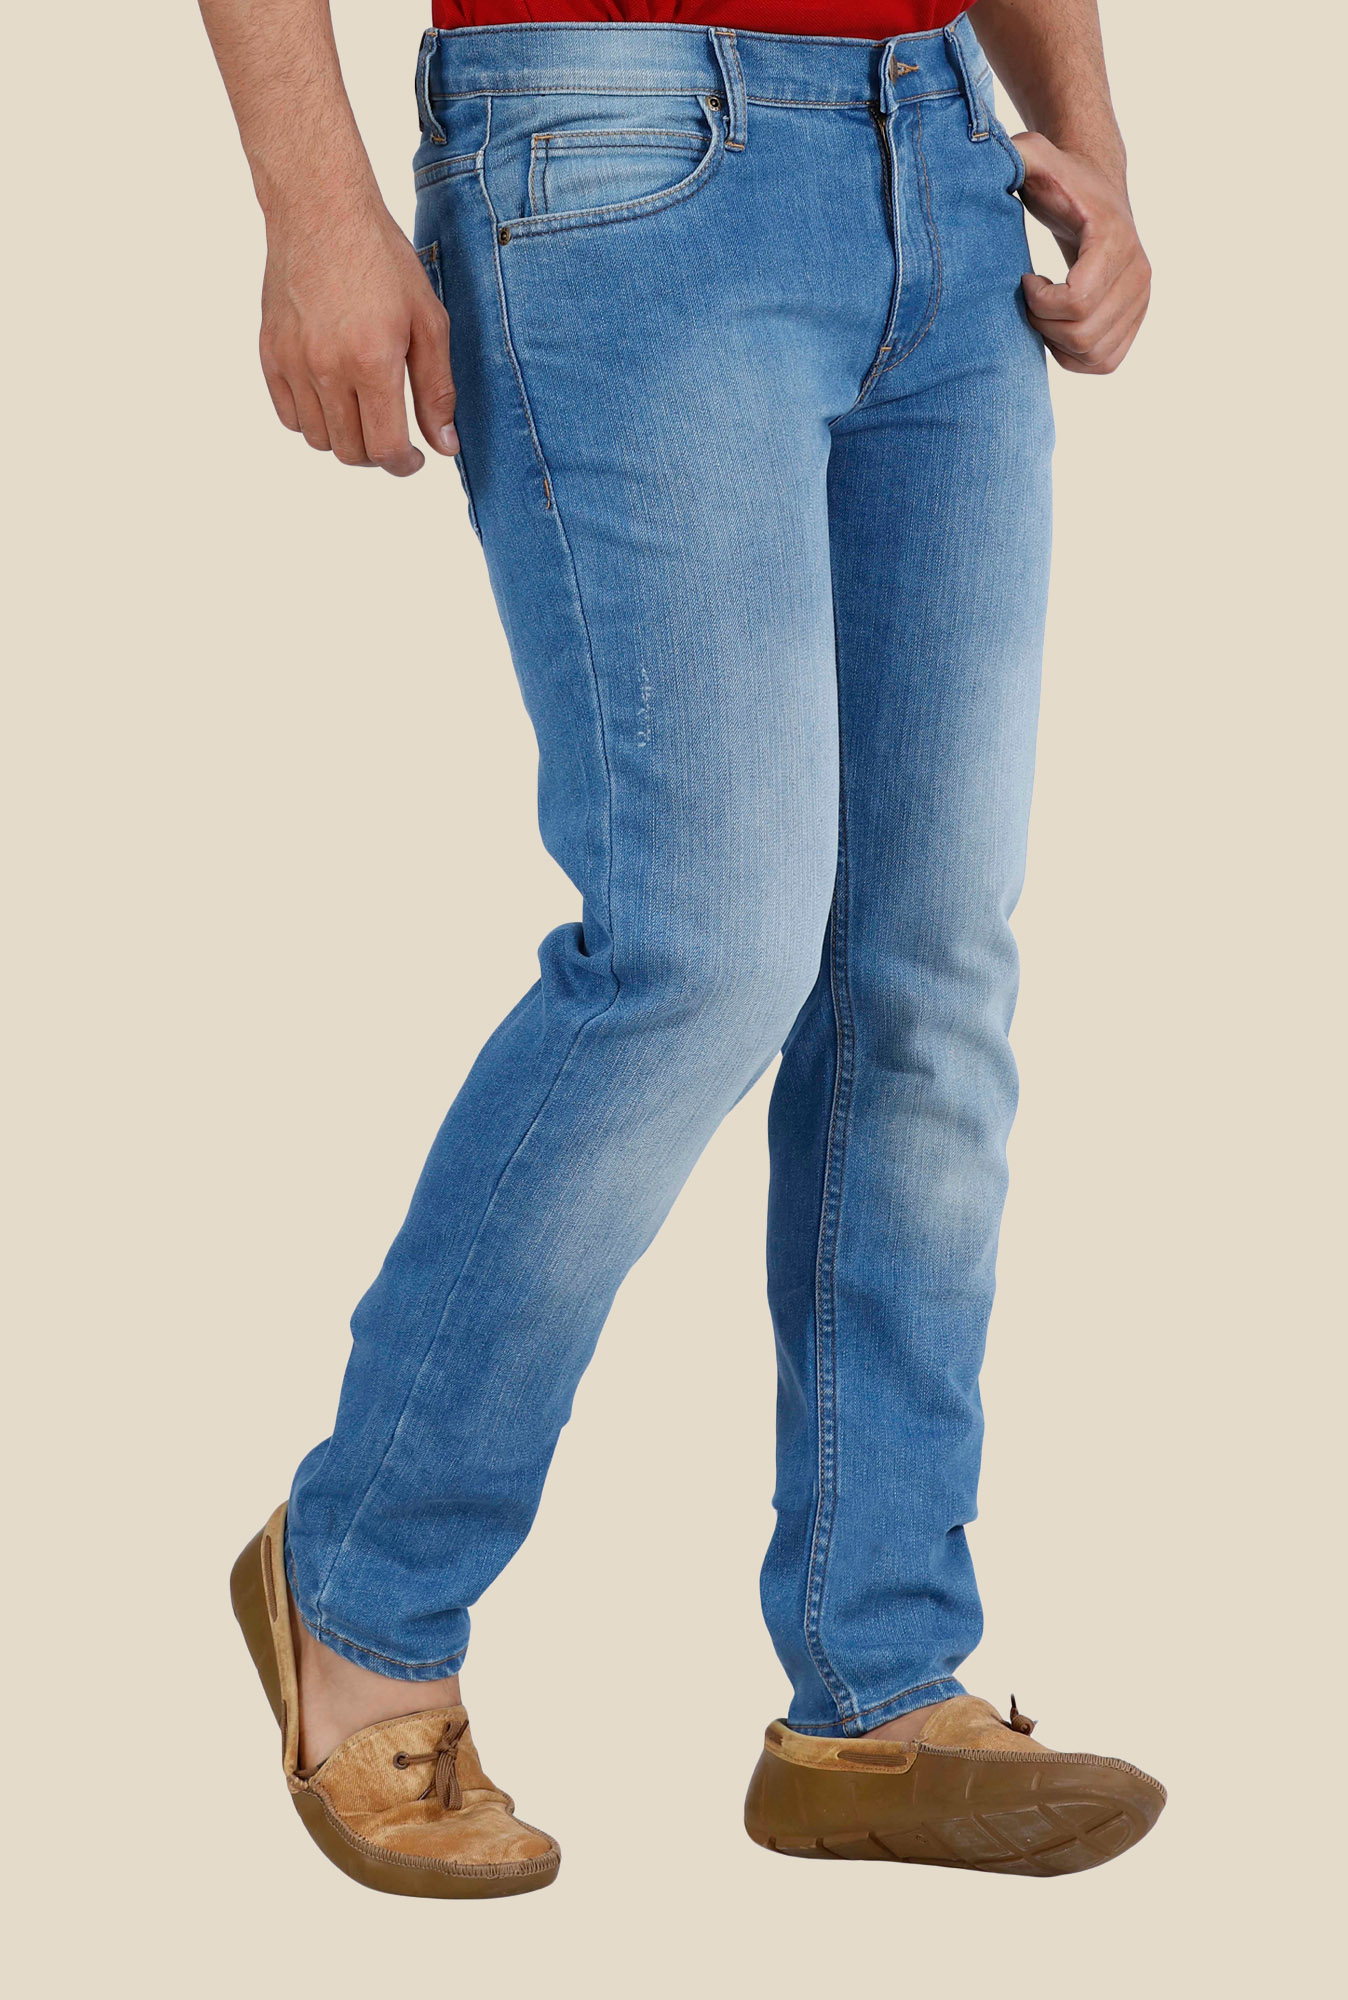 Lee Bruce Blue Low Rise Jeans